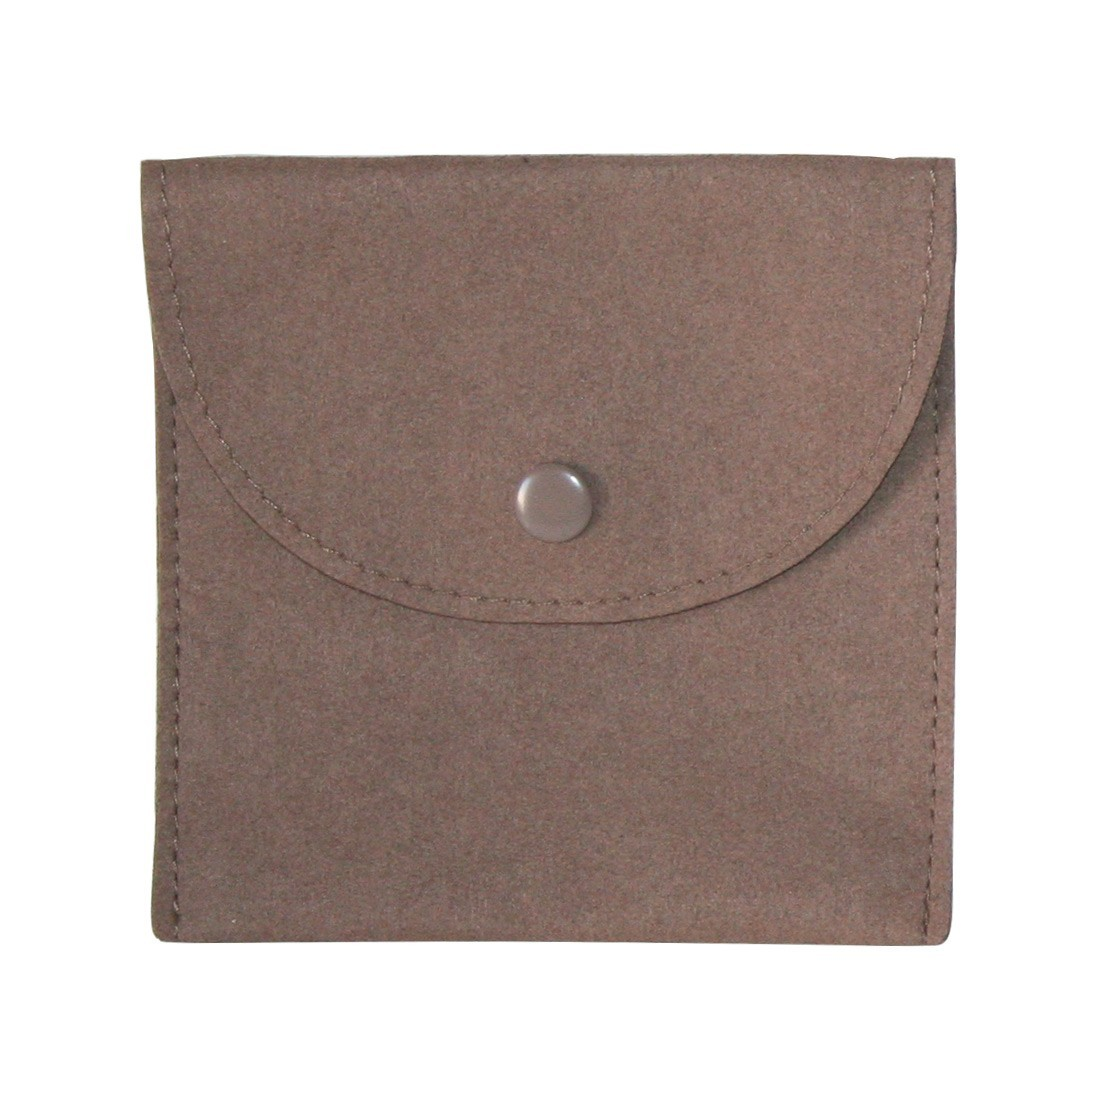 Jewellery packaging. Pocket pouch